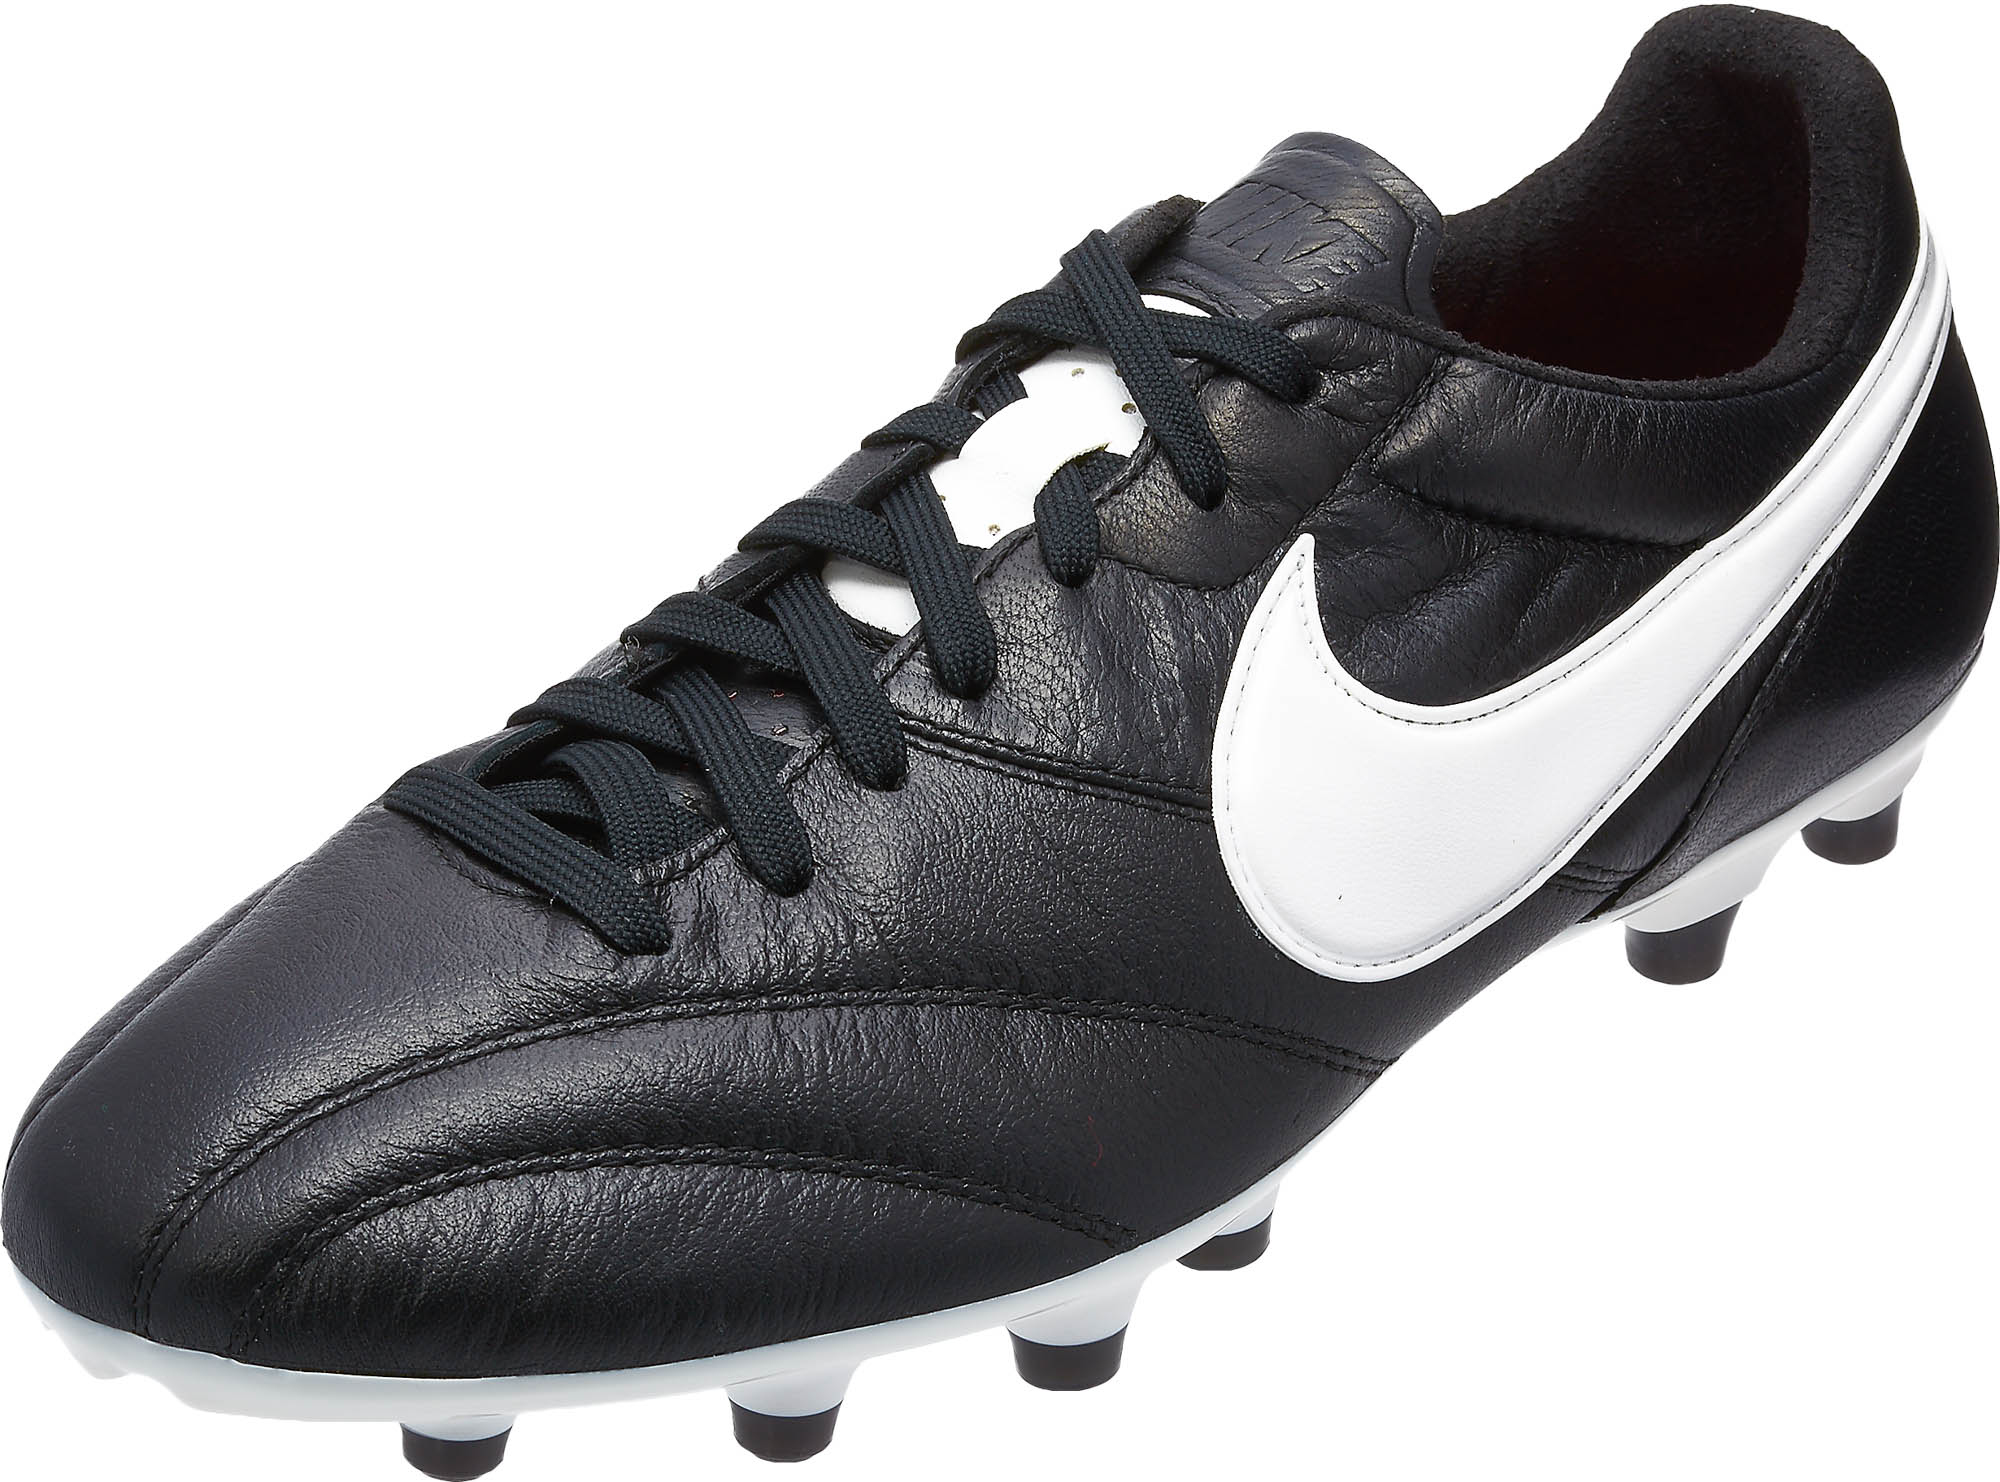 61427f31b42 The Nike Premier FG Soccer Cleats Black with White - Soccer Master